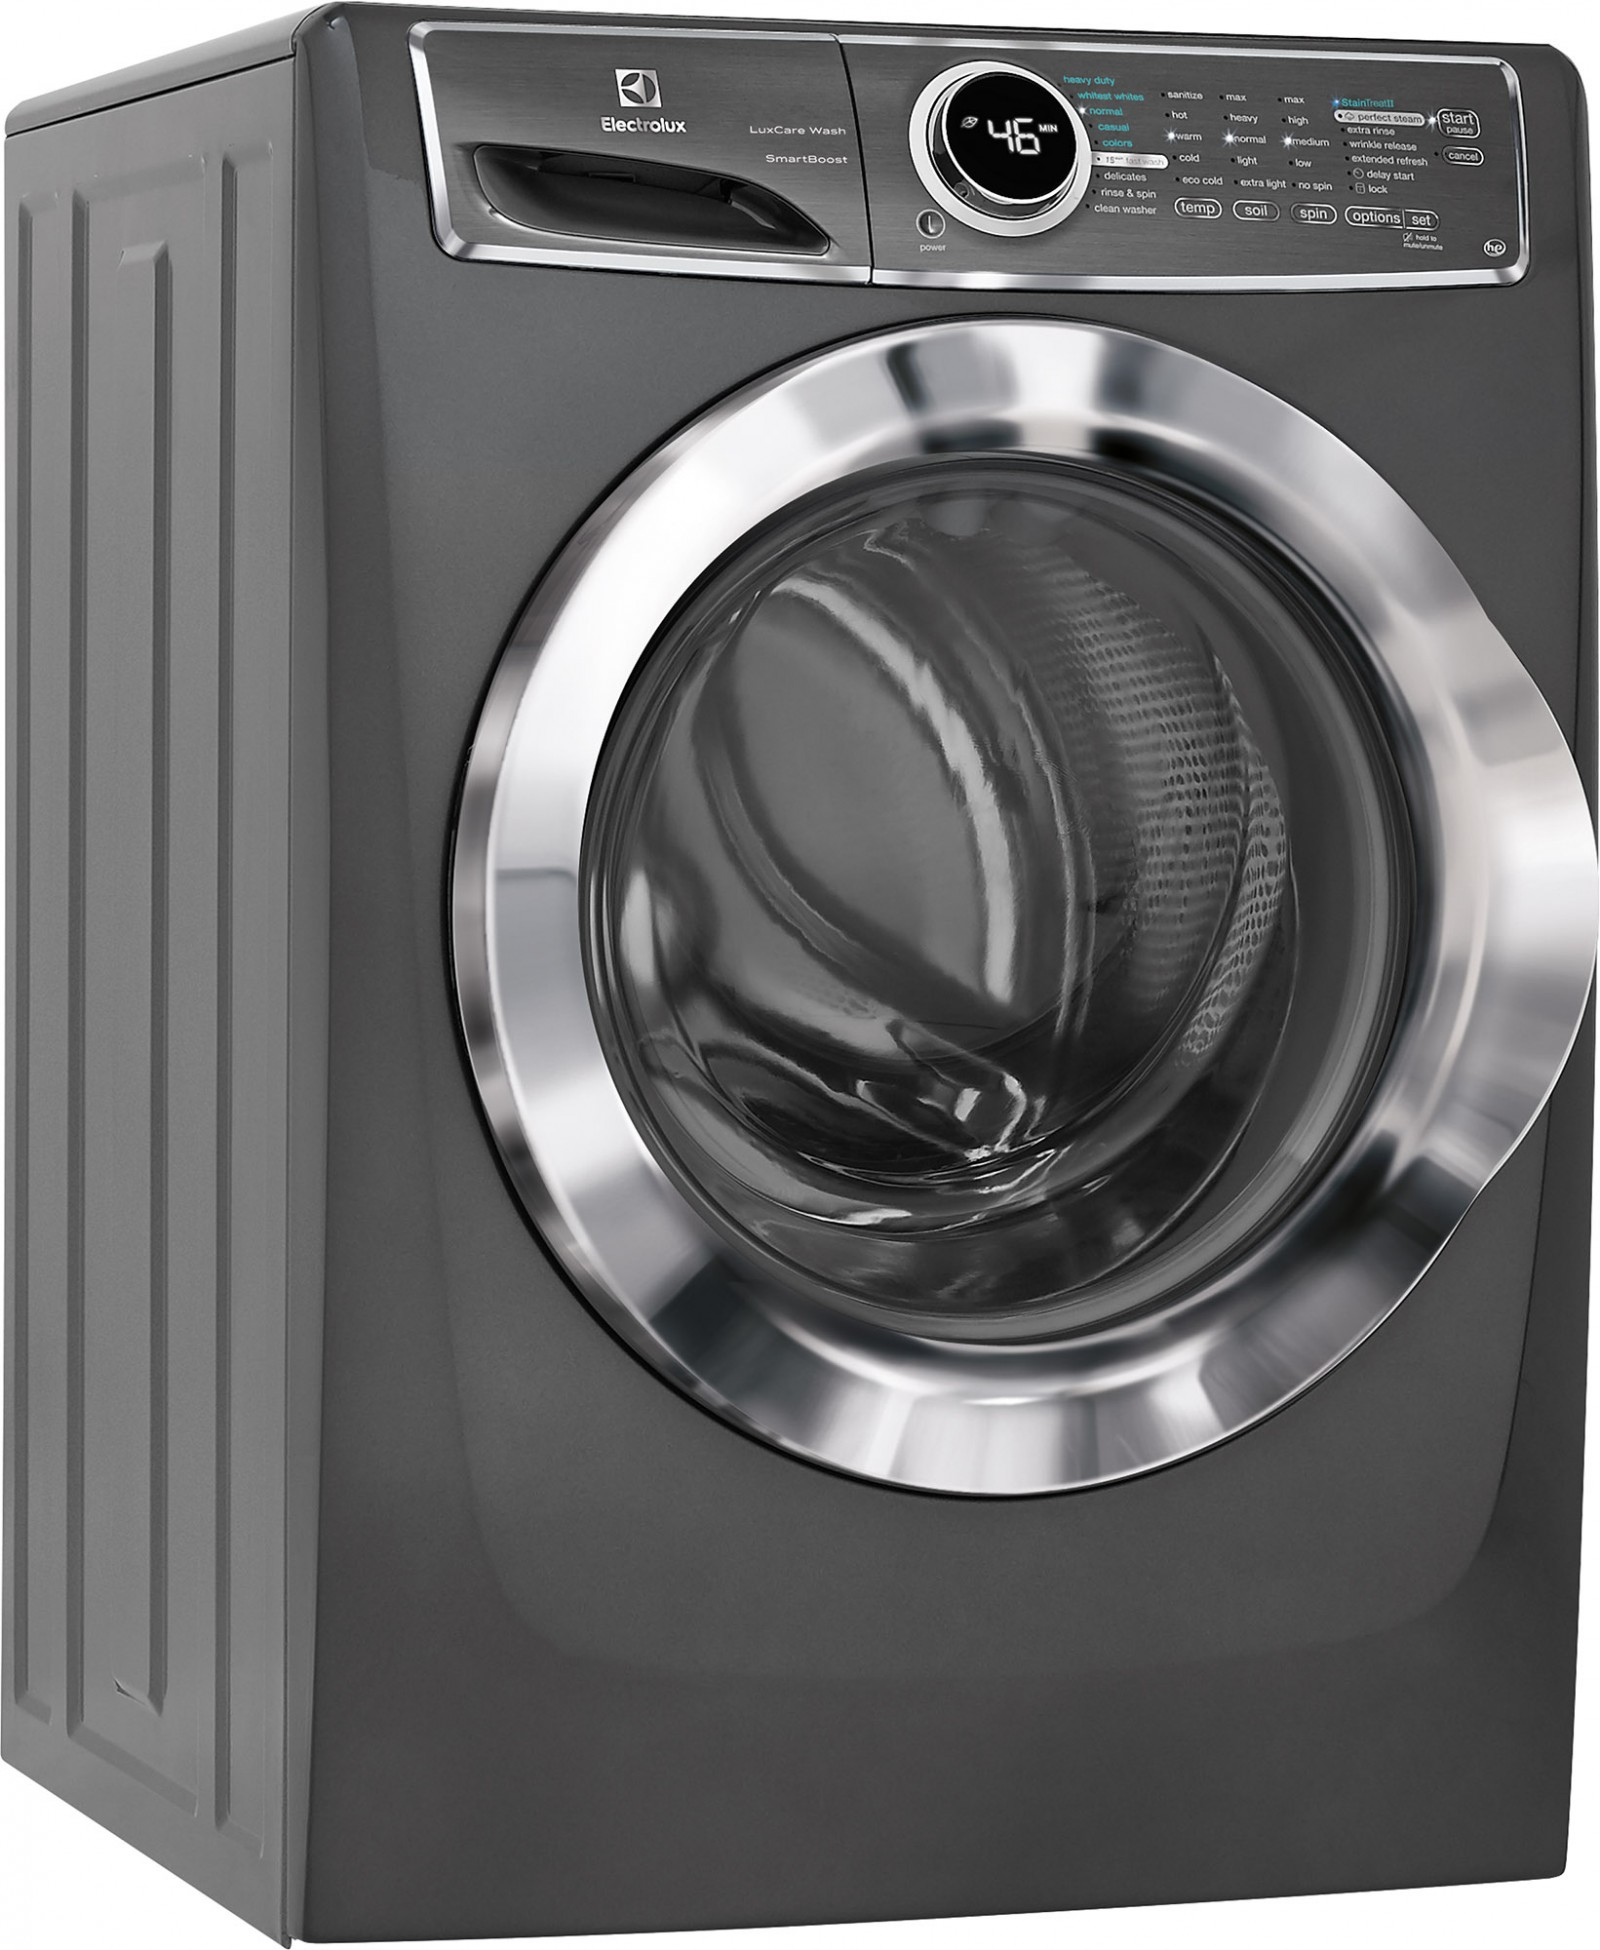 New Washer And Dryer Electrolux Washing Machine Review Smartboost Revolution Of 2016